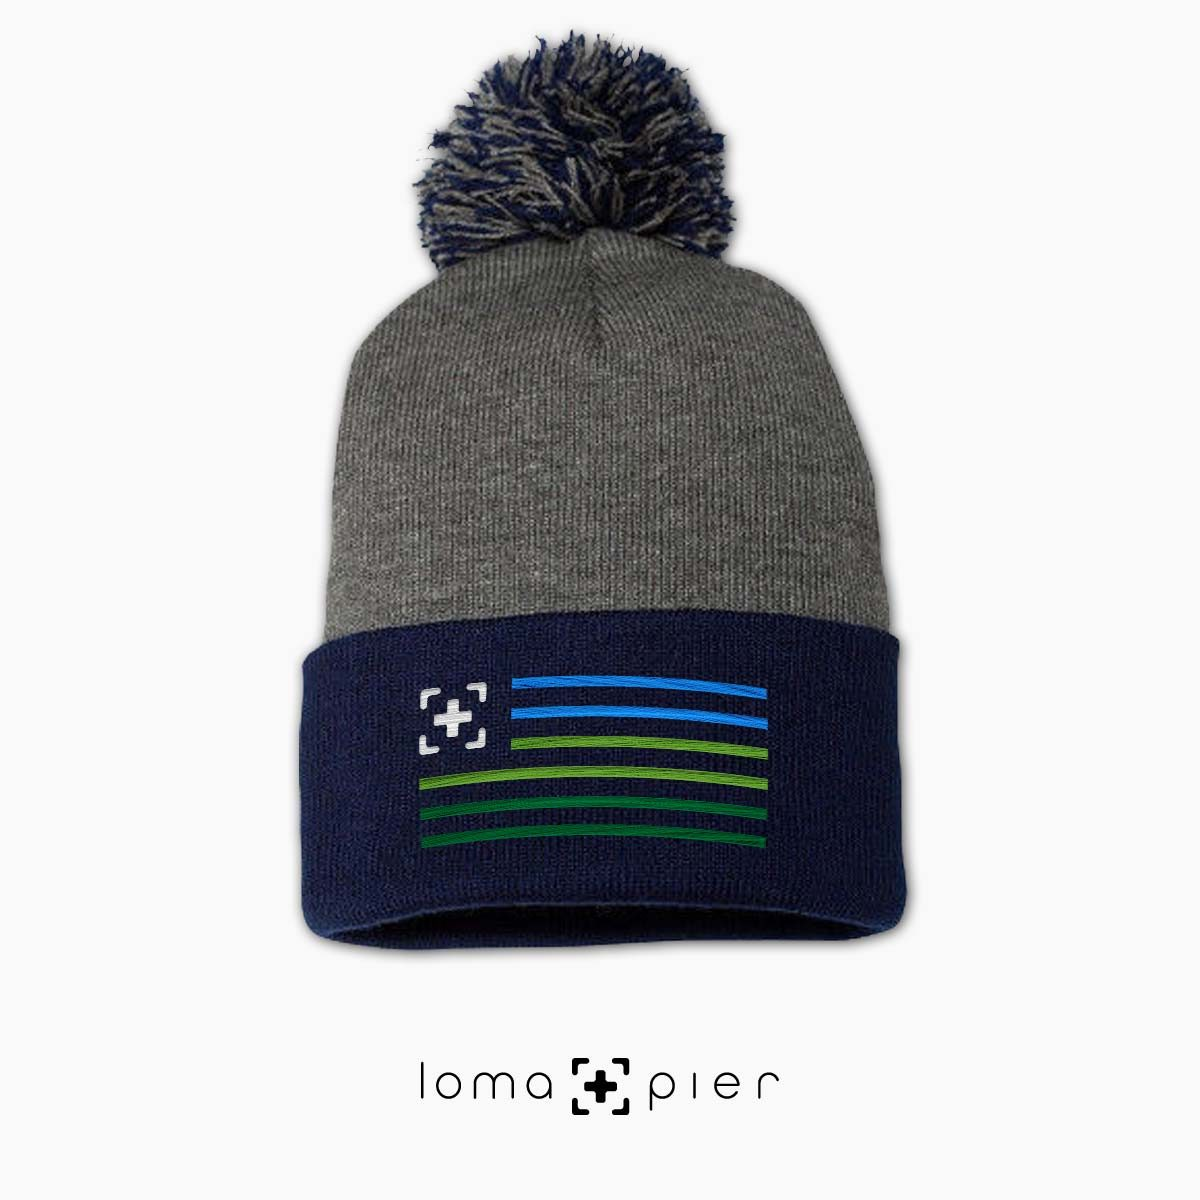 loma+stripes icon embroidered on a navy grey pom pom beanie by loma+pier beanie store